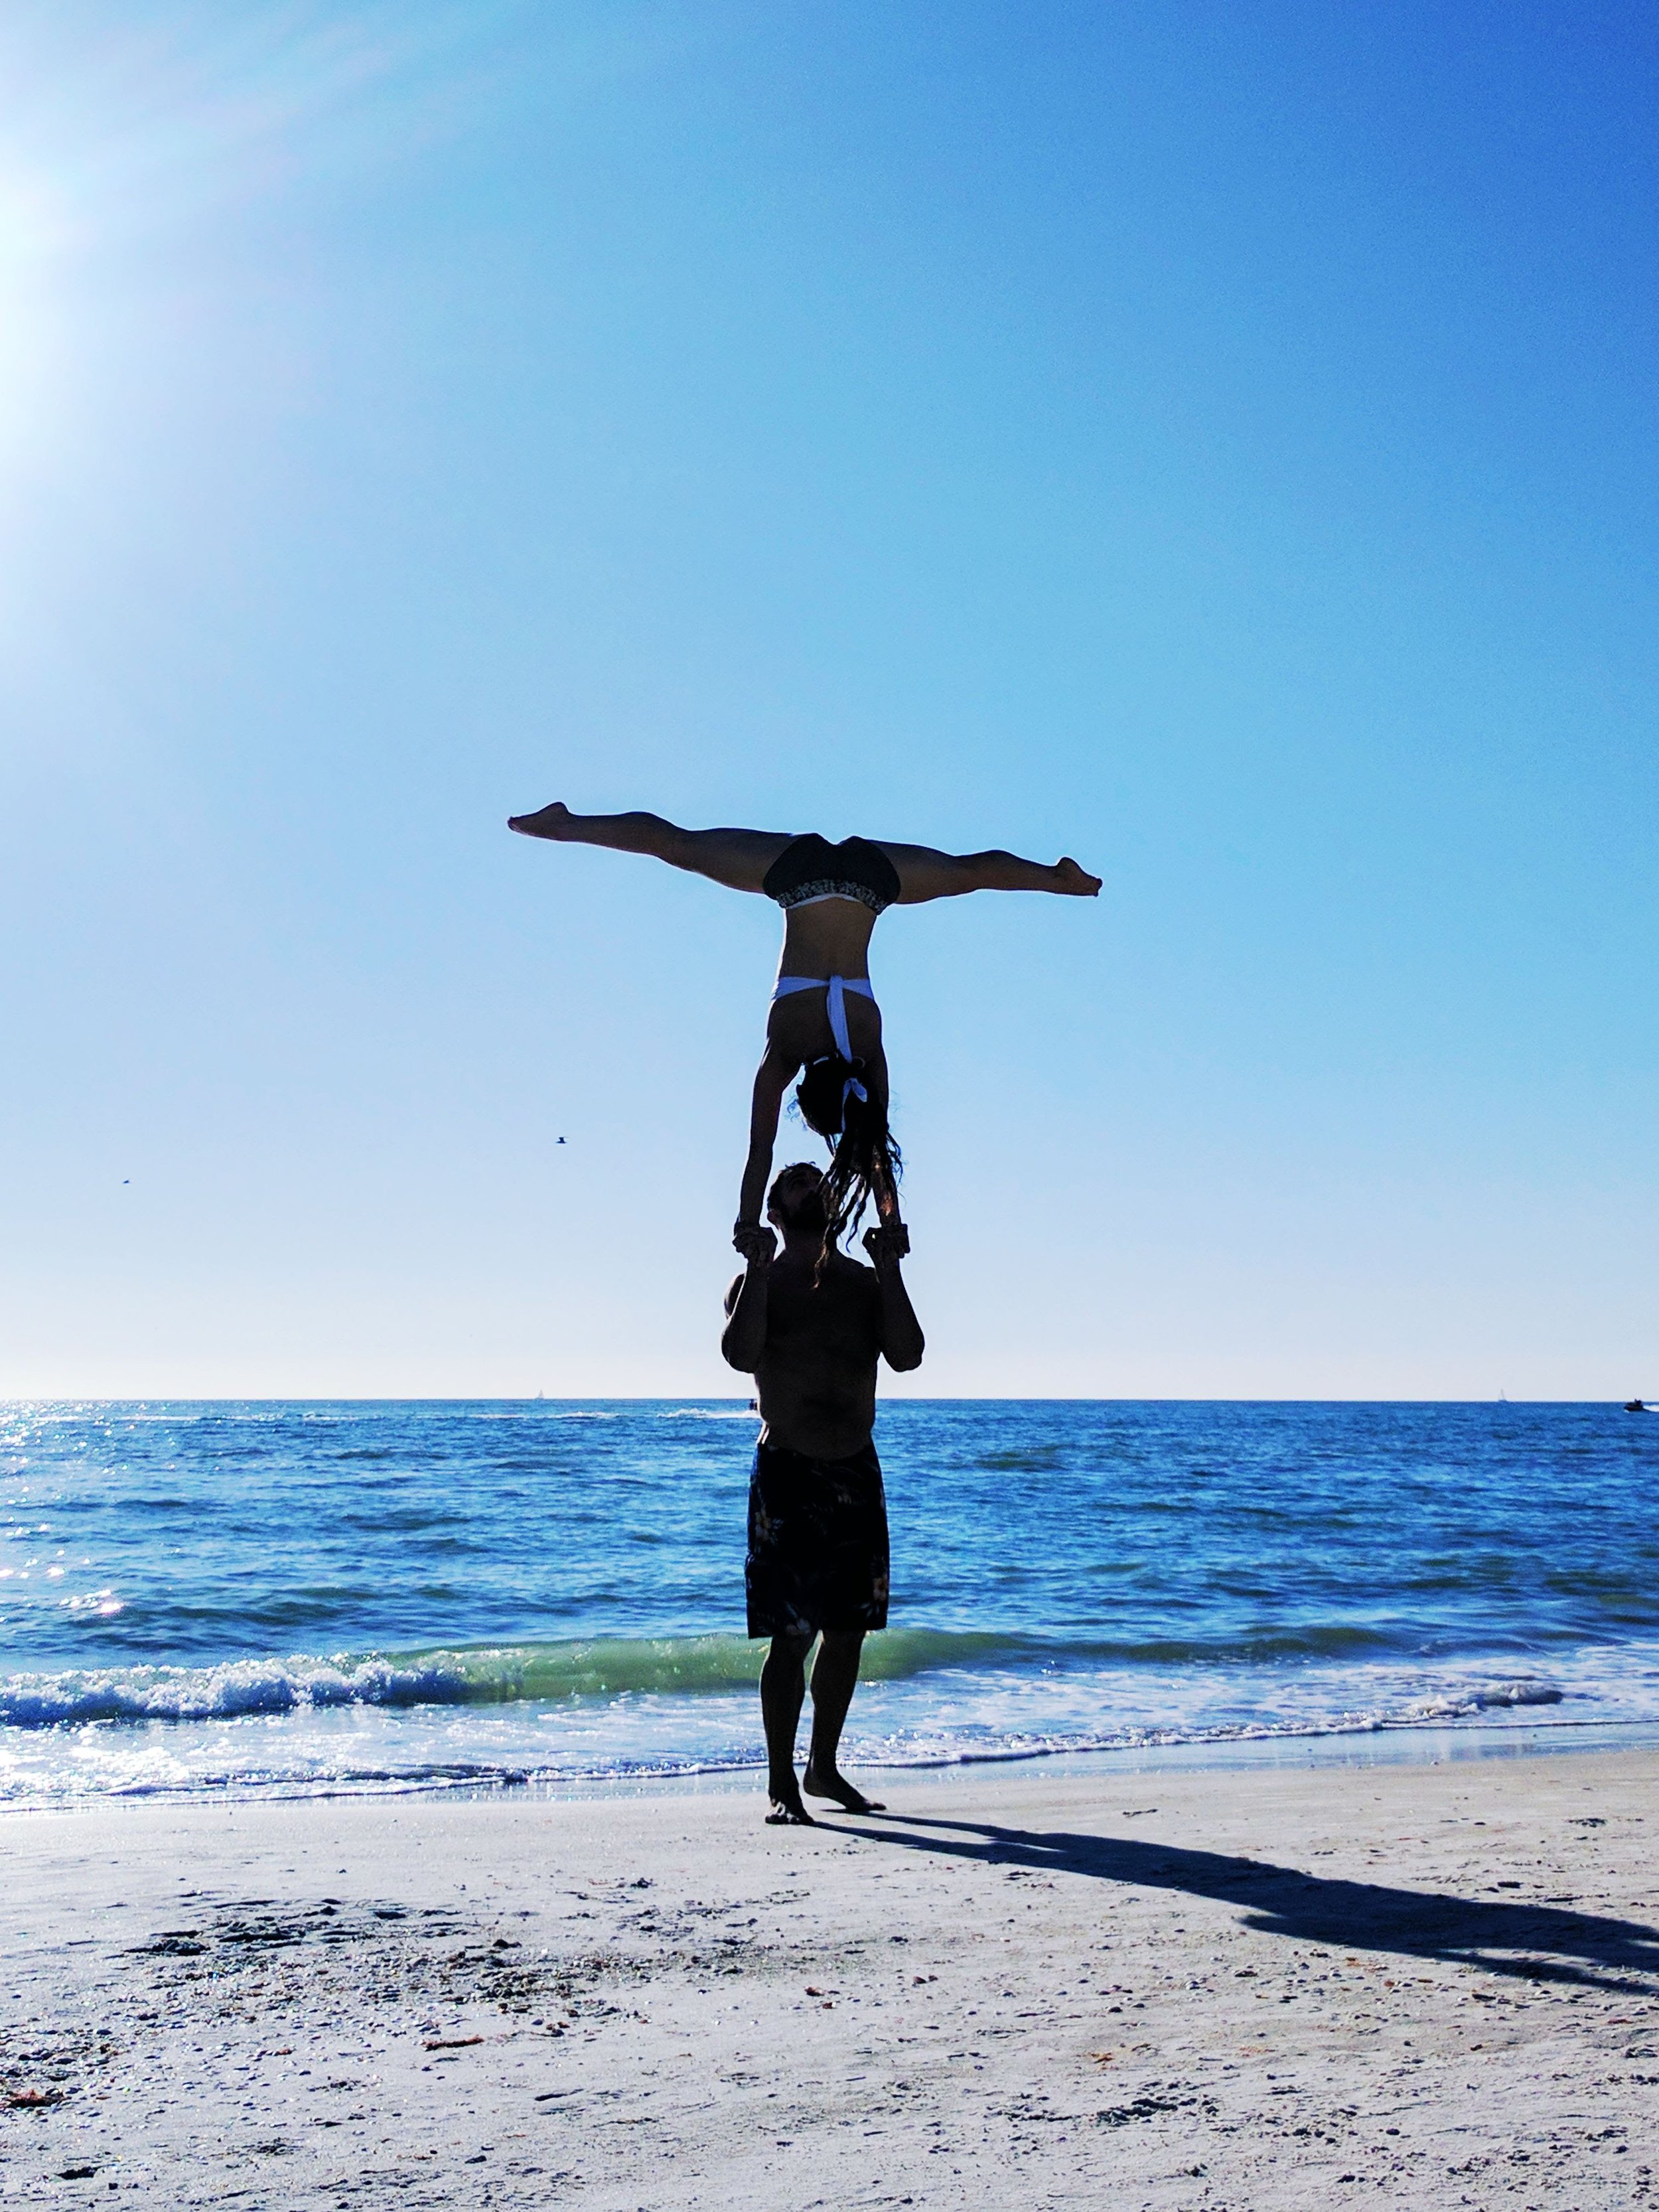 Hand to Hand Handstand Trick on the beach in St Petersburg Florida